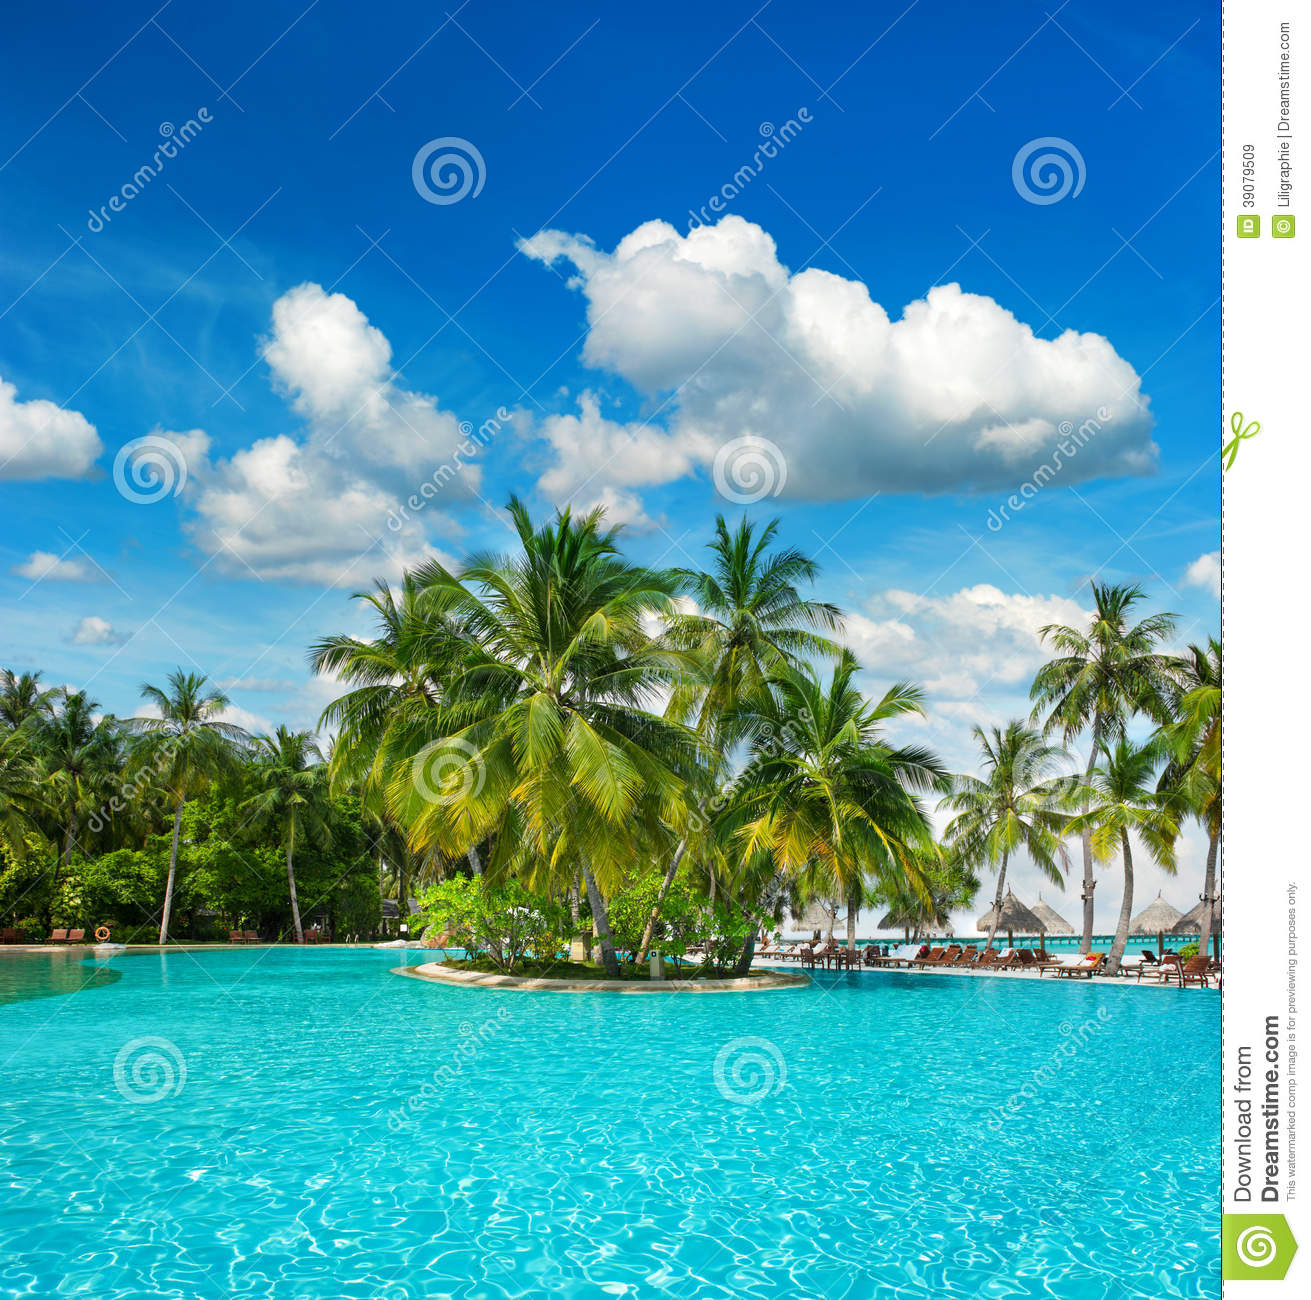 Pool Surrounded By Palm Trees Royalty Free Stock Photography 73311443